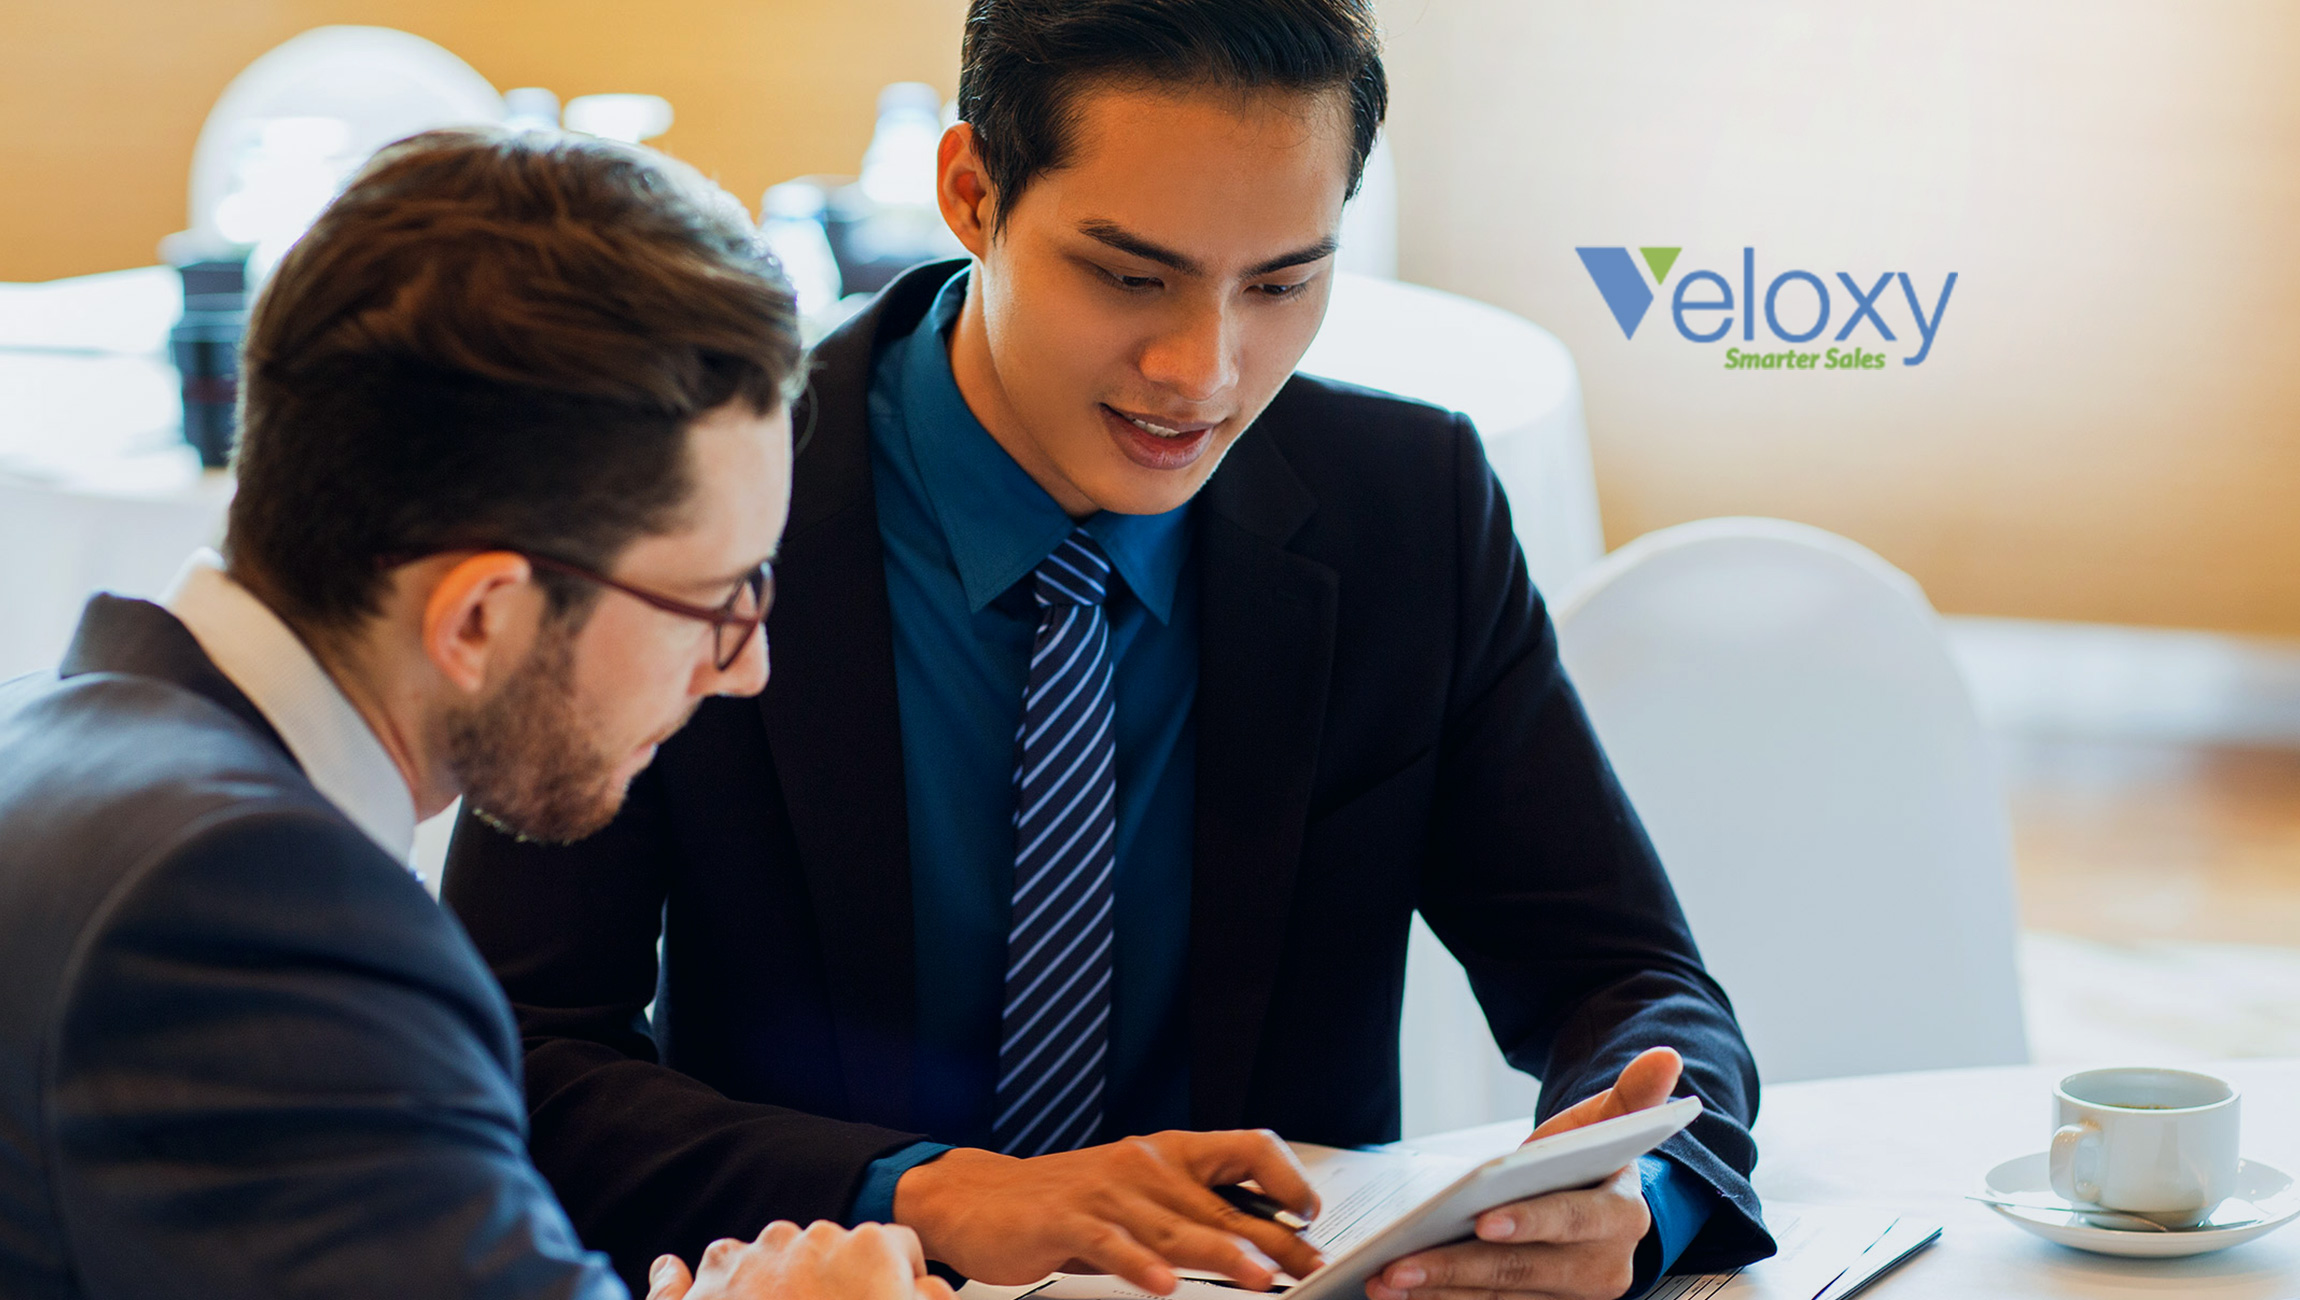 VeloxyIO Curbs Sales Team Spam, Helping Enterprises Avoid CAN-SPAM Violations and Protect Their Corporate Email Reputation